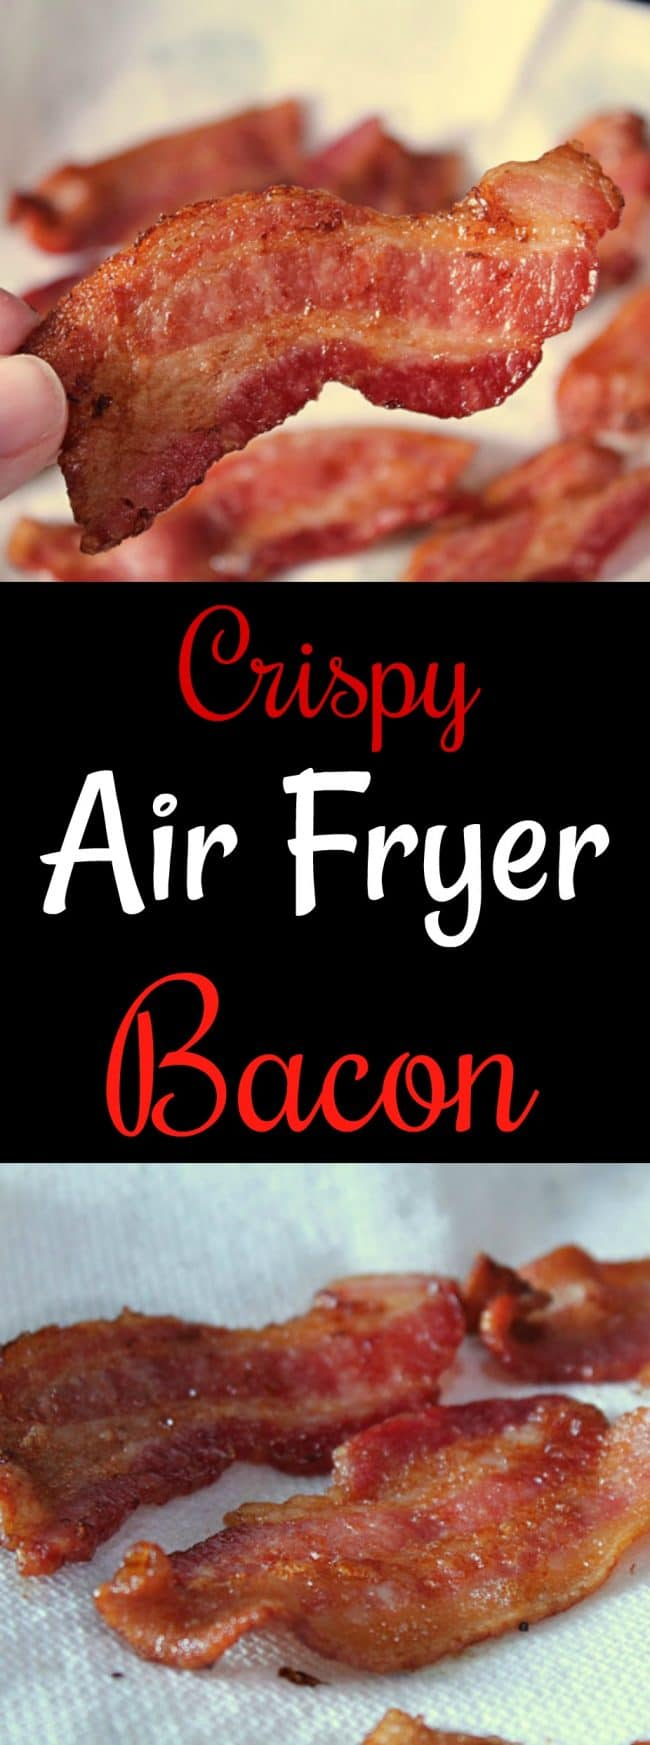 How To Make Crispy Air Fryer Bacon